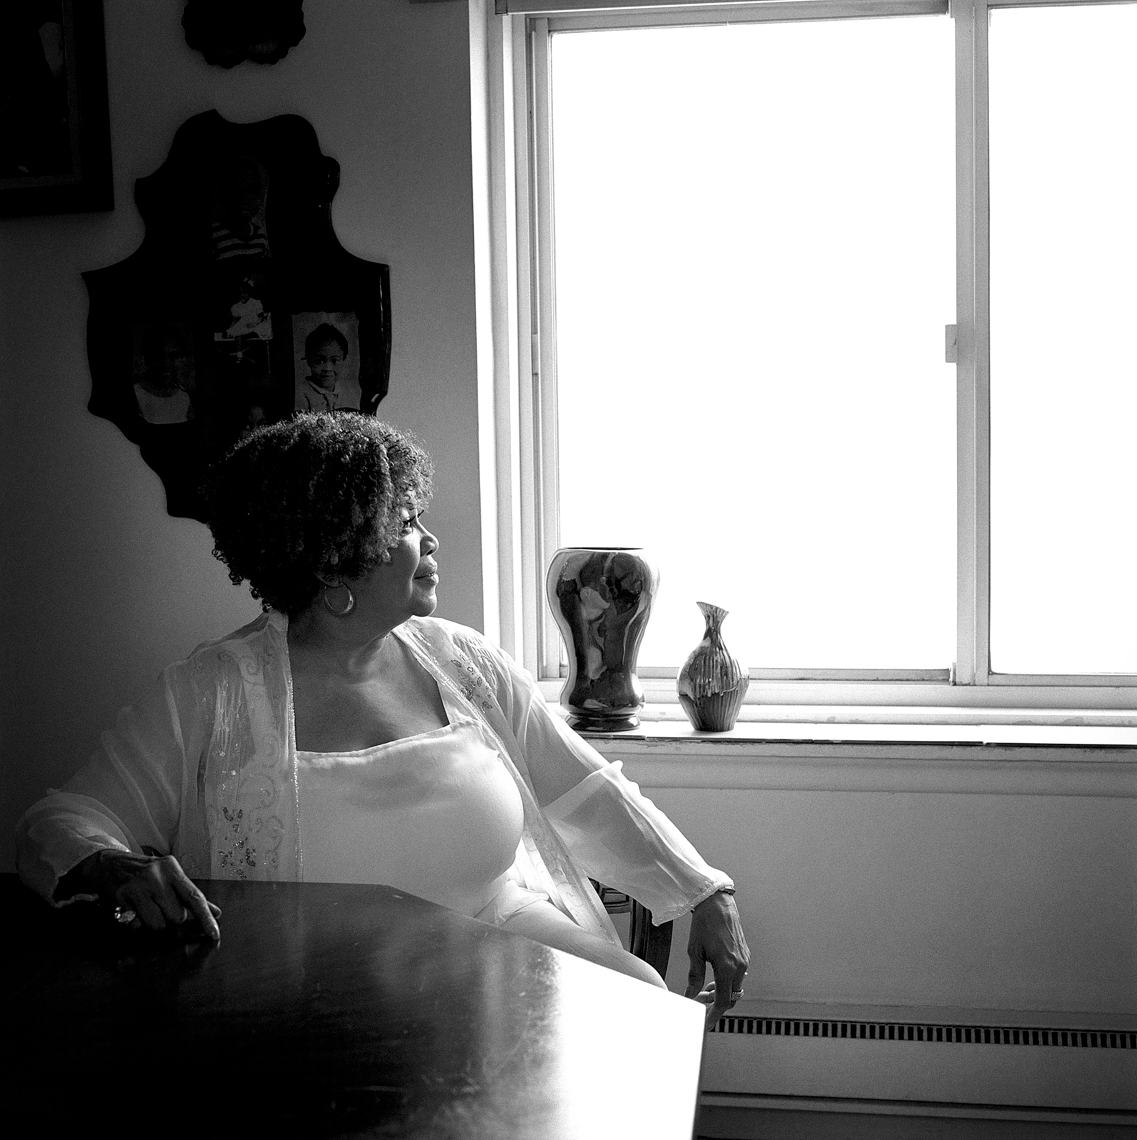 Portrait of Mavis Staples, Stax Records, Memphis, TN, Staples Singers, Documentary, Editorial photographer, Photojournalist, New Orleans, Nashville, Atlanta, Texas, Austin, Chicago, Washington, D.C., DC, Photographer, soulful, portrait, resilience, dark,